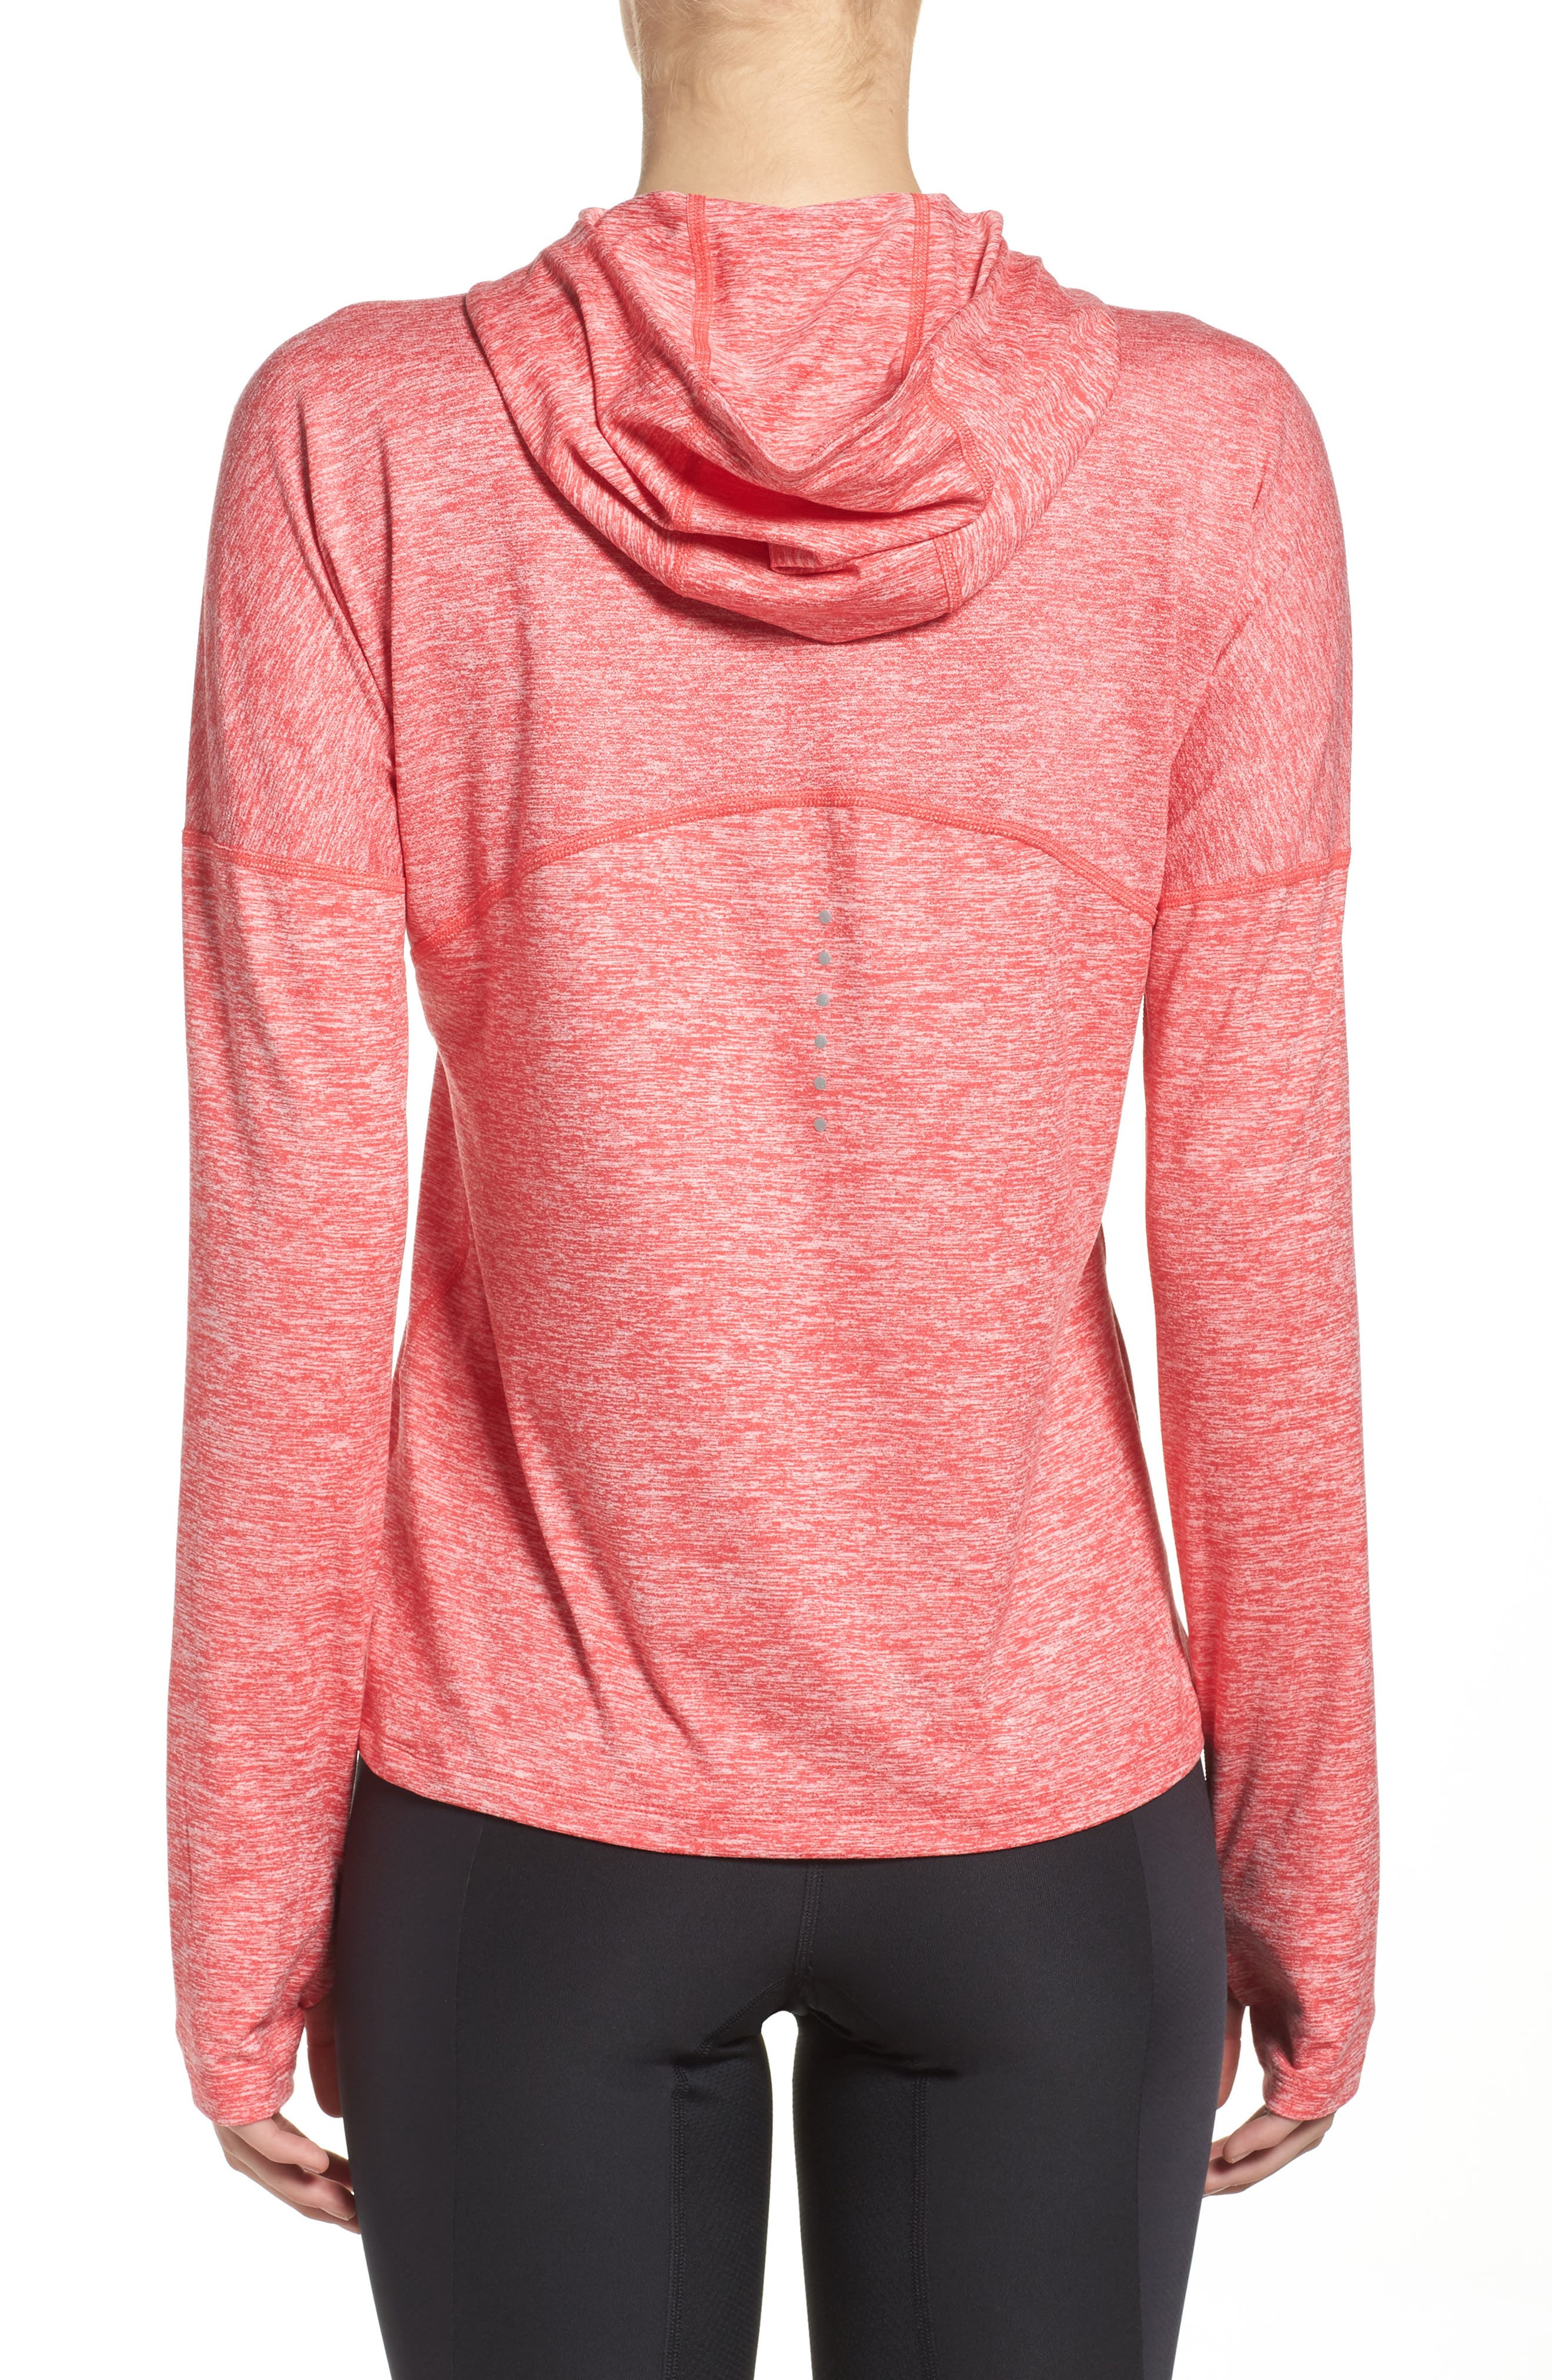 Dry Element Running Hoodie,                             Alternate thumbnail 2, color,                             Light Fusion Red/ Heather